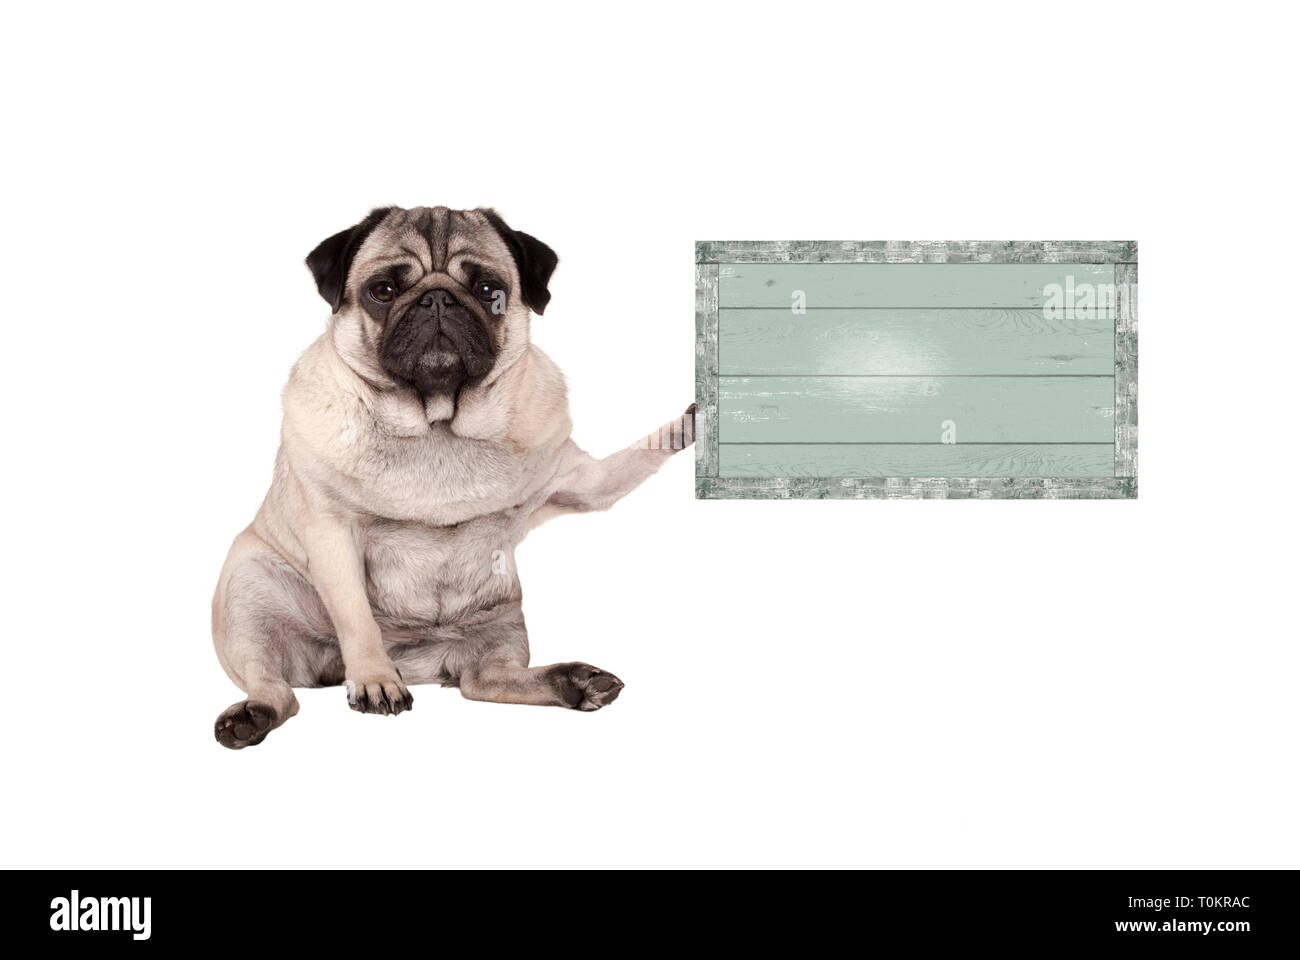 cute grumpy pug puppy dog, sitting down, holding weathered vintage green wooden sign board, isolated on white background Stock Photo